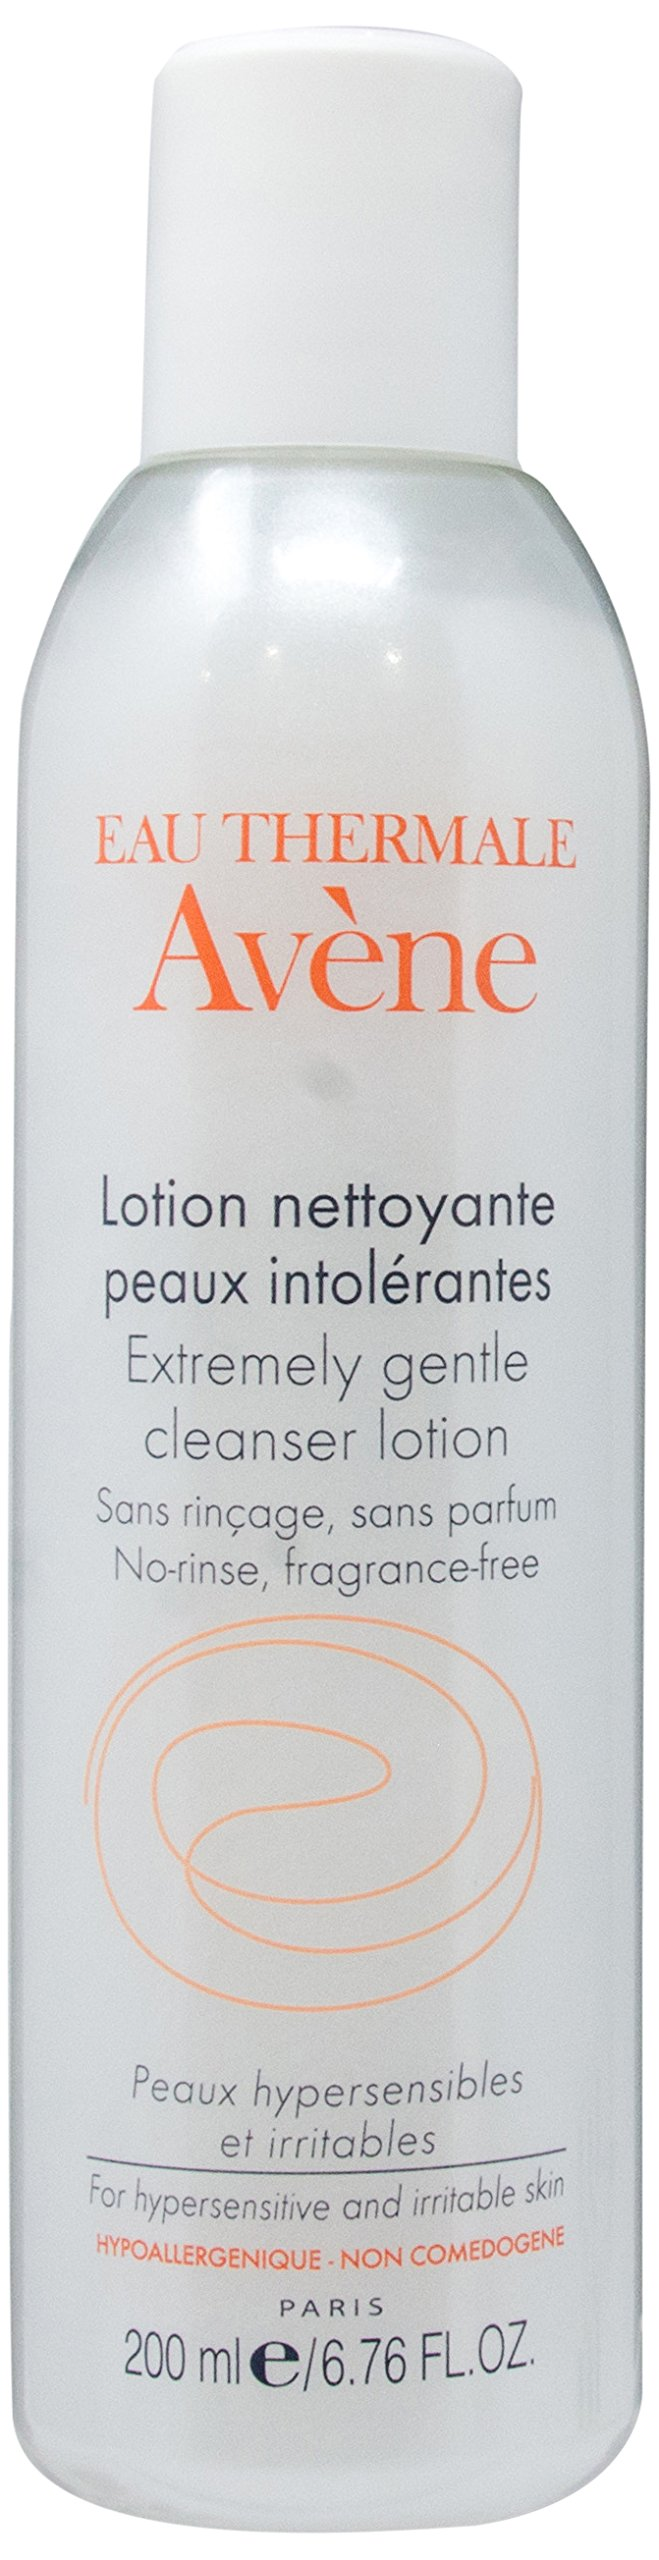 Eau Thermale Avene Extremely Gentle Cleanser Lotion, Face Wash for Sensitive Skin, Fragrance, Soap, Paraben, Oil, Soy, Gluten Free, 6.76 oz.